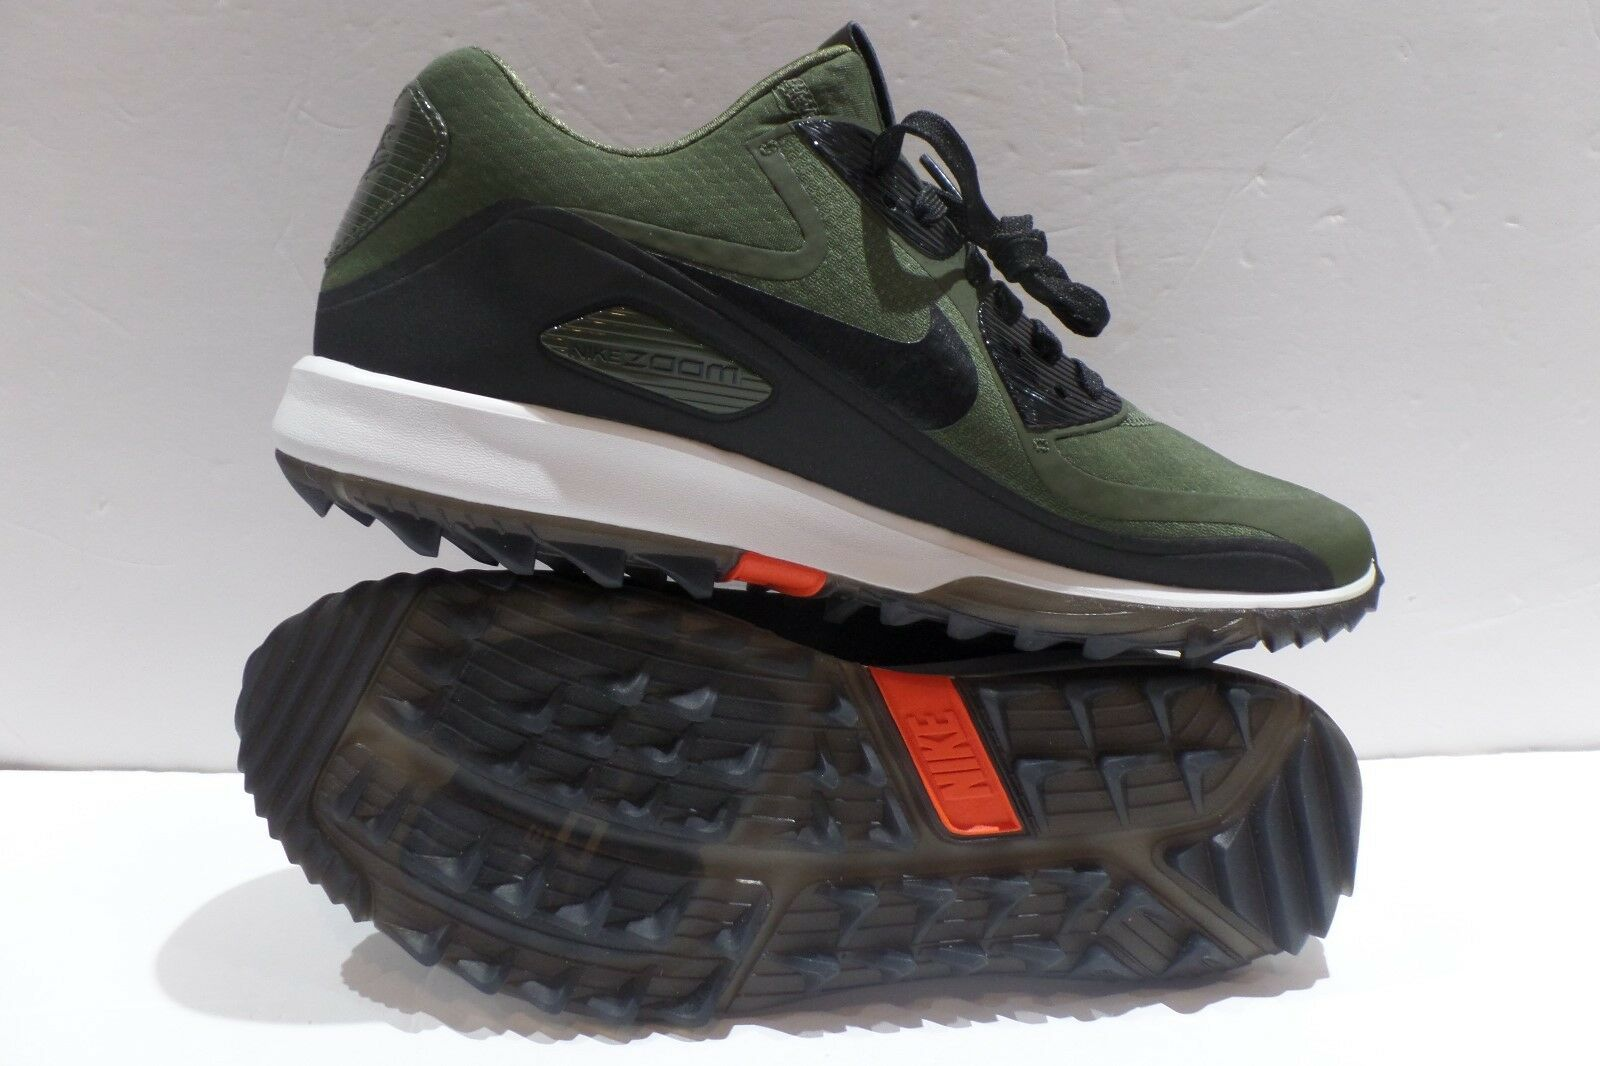 Nike Air Zoom 90 IT 844569 300 Cargo Khaki Black size 9 Golf Shoe NEW Rory